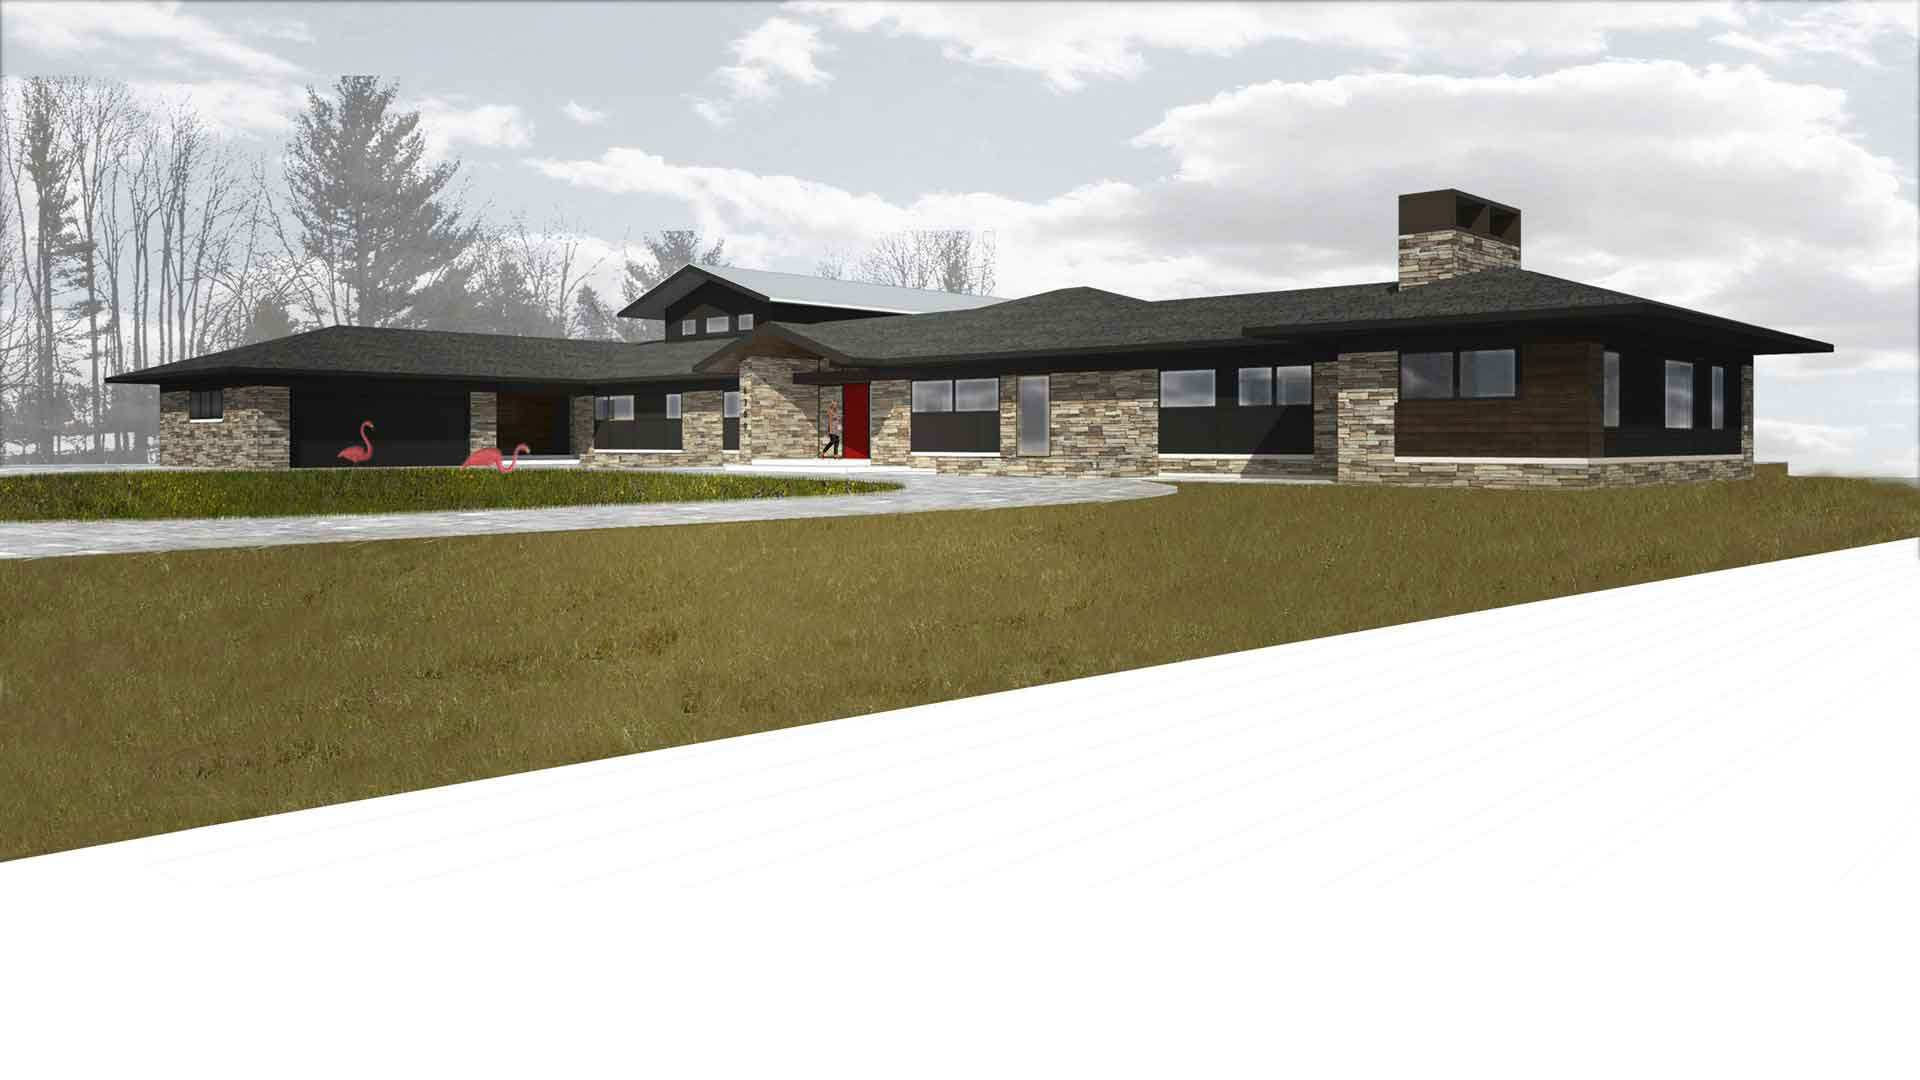 Midcentury Modern Renovation 3 - Exterior Rendering - HAUS Architecture, Christopher Short, Indianapolis Architect